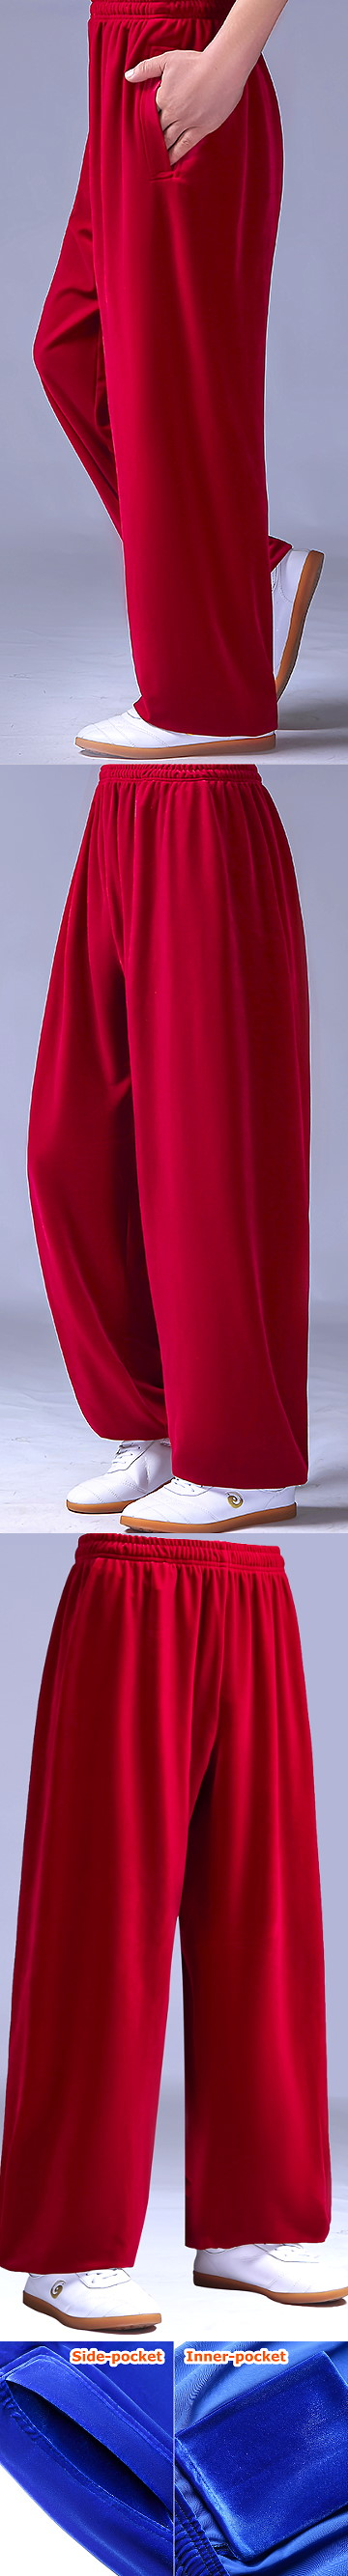 Professional Taichi Kungfu Pants - Velvet - Red (RM)